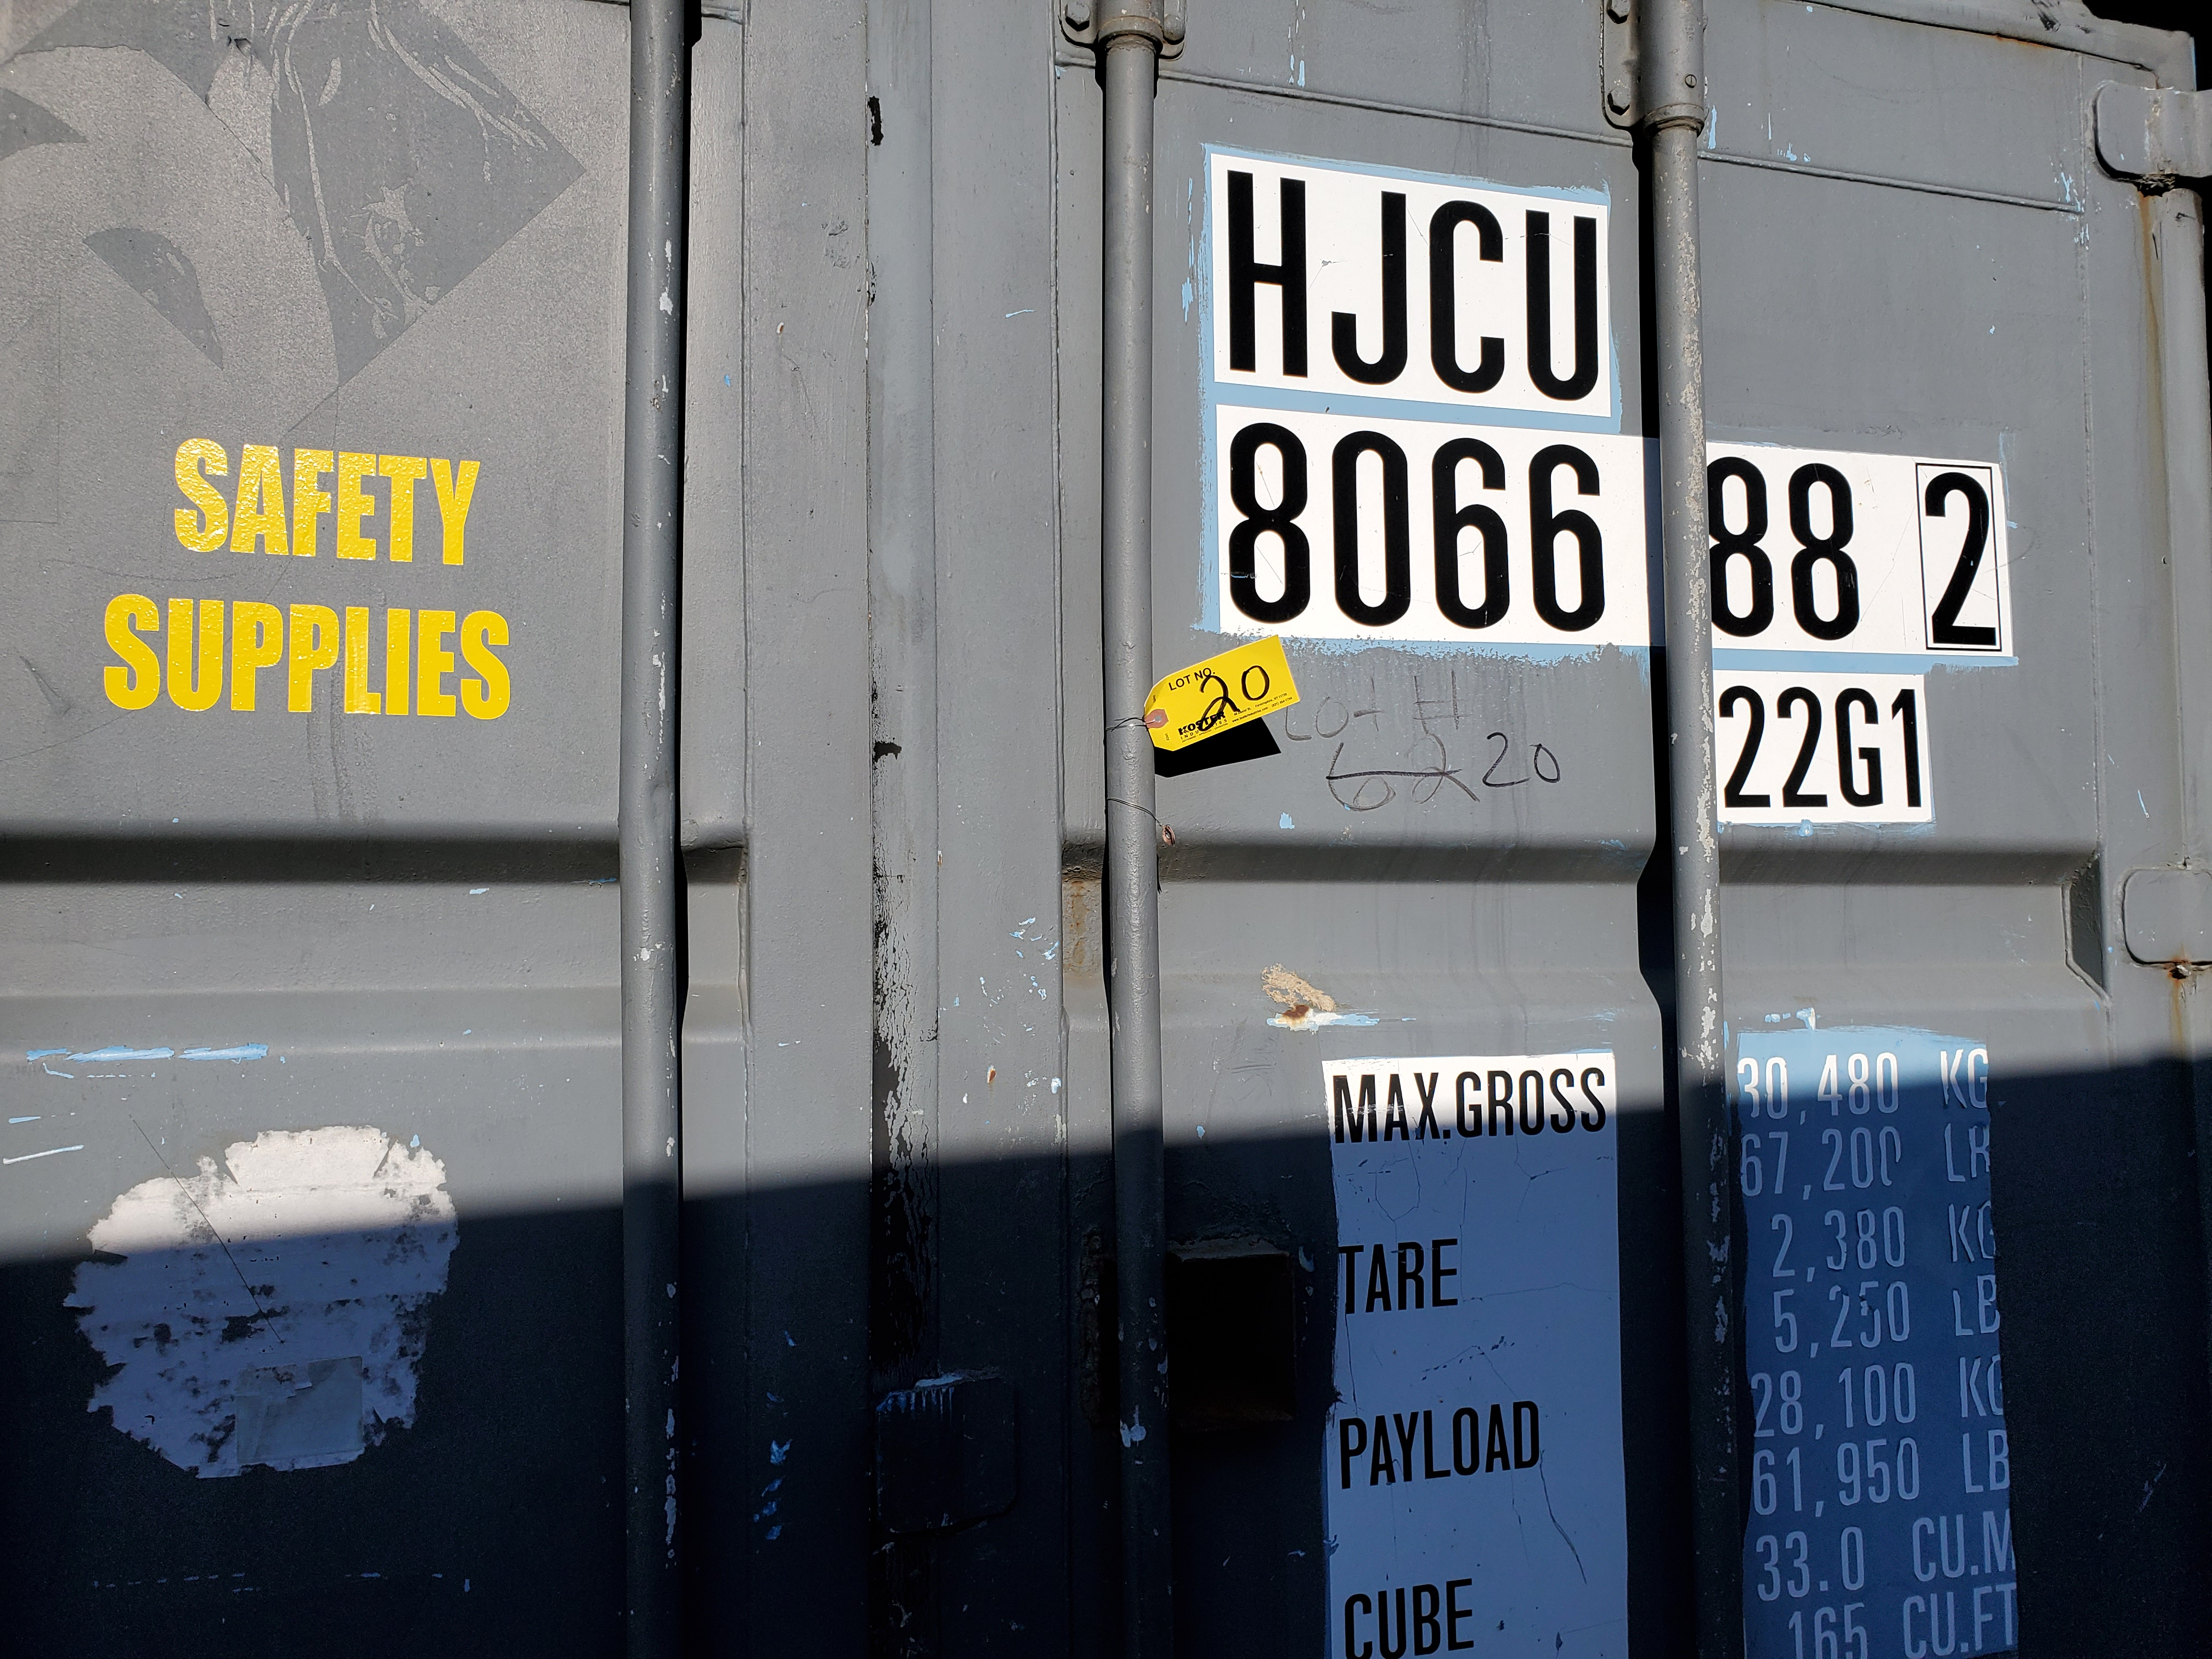 Lot 20 - 20' SHIPPING CONTAINER (#1) [LOCATED @ 6 CANAL ROAD, PELHAM, NY (BRONX)]